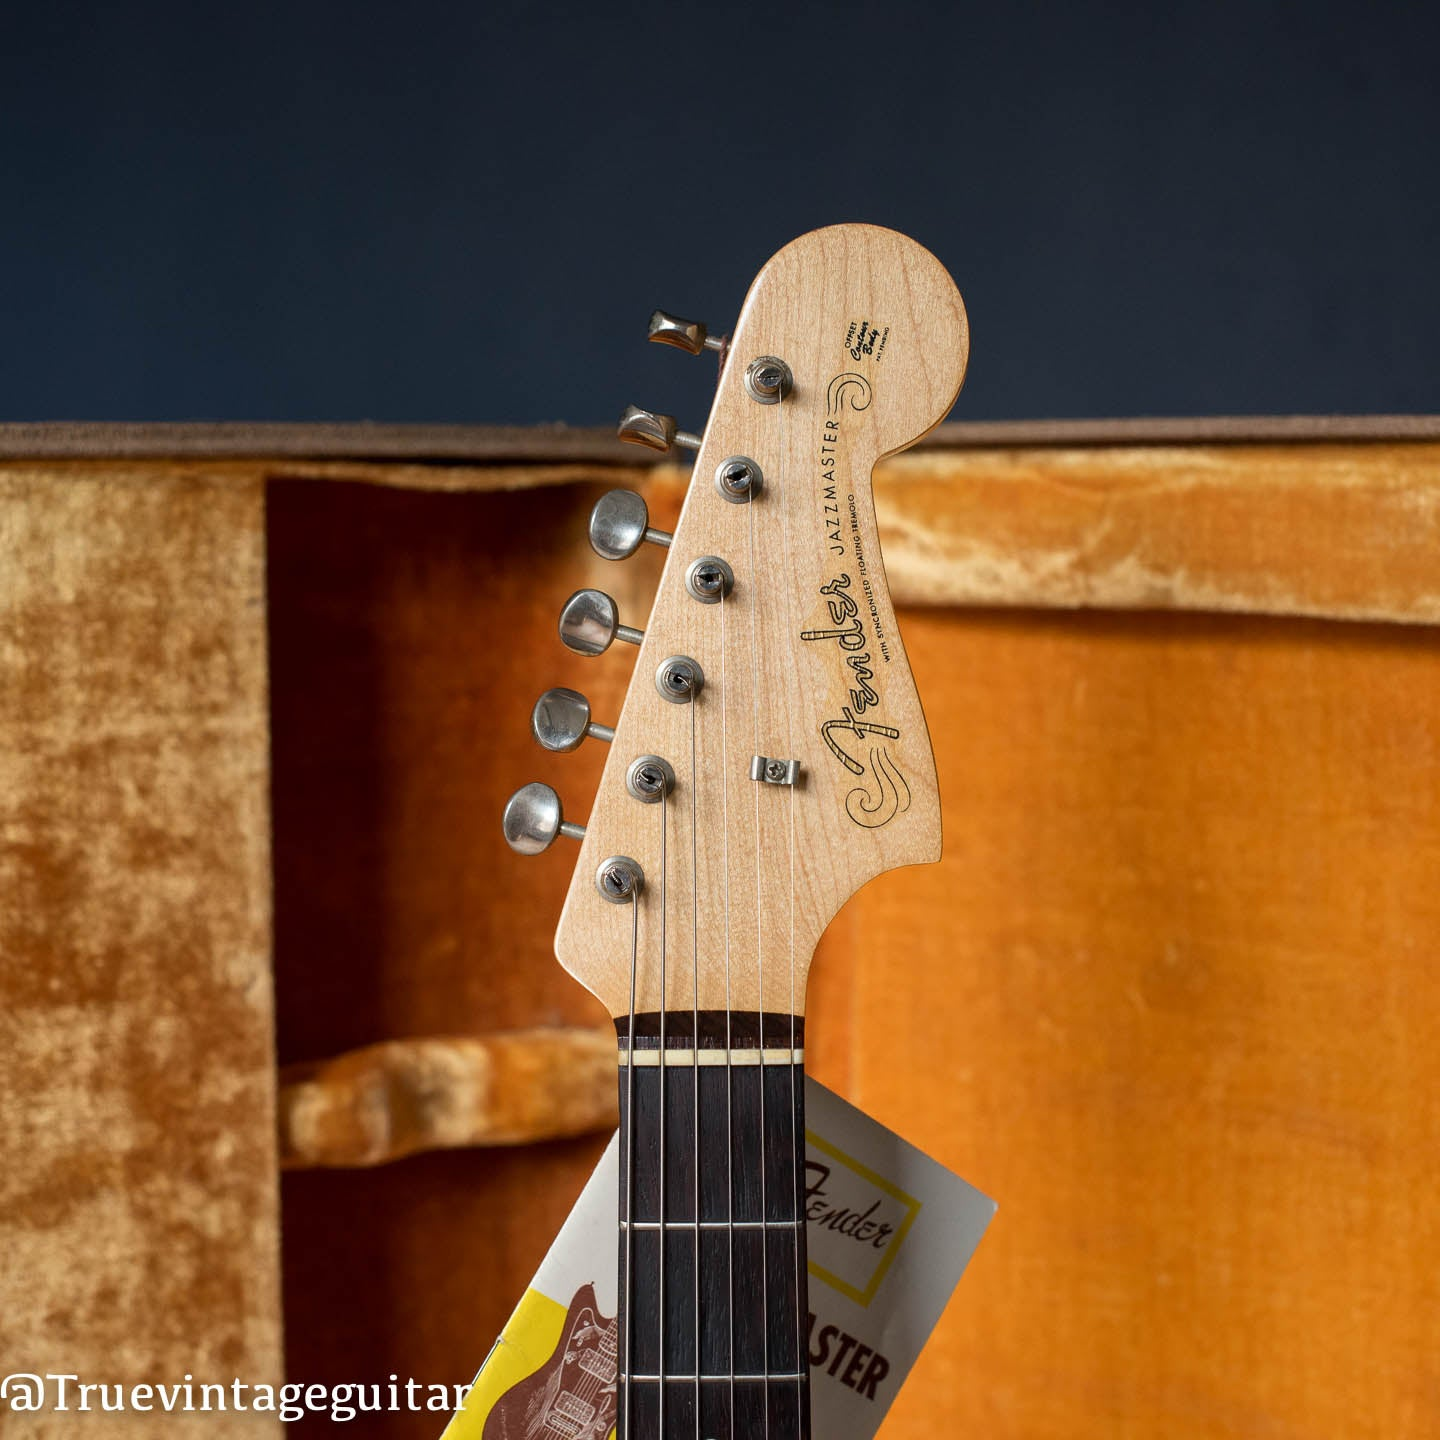 1961 Fender Jazzmaster Blond finish, headstock